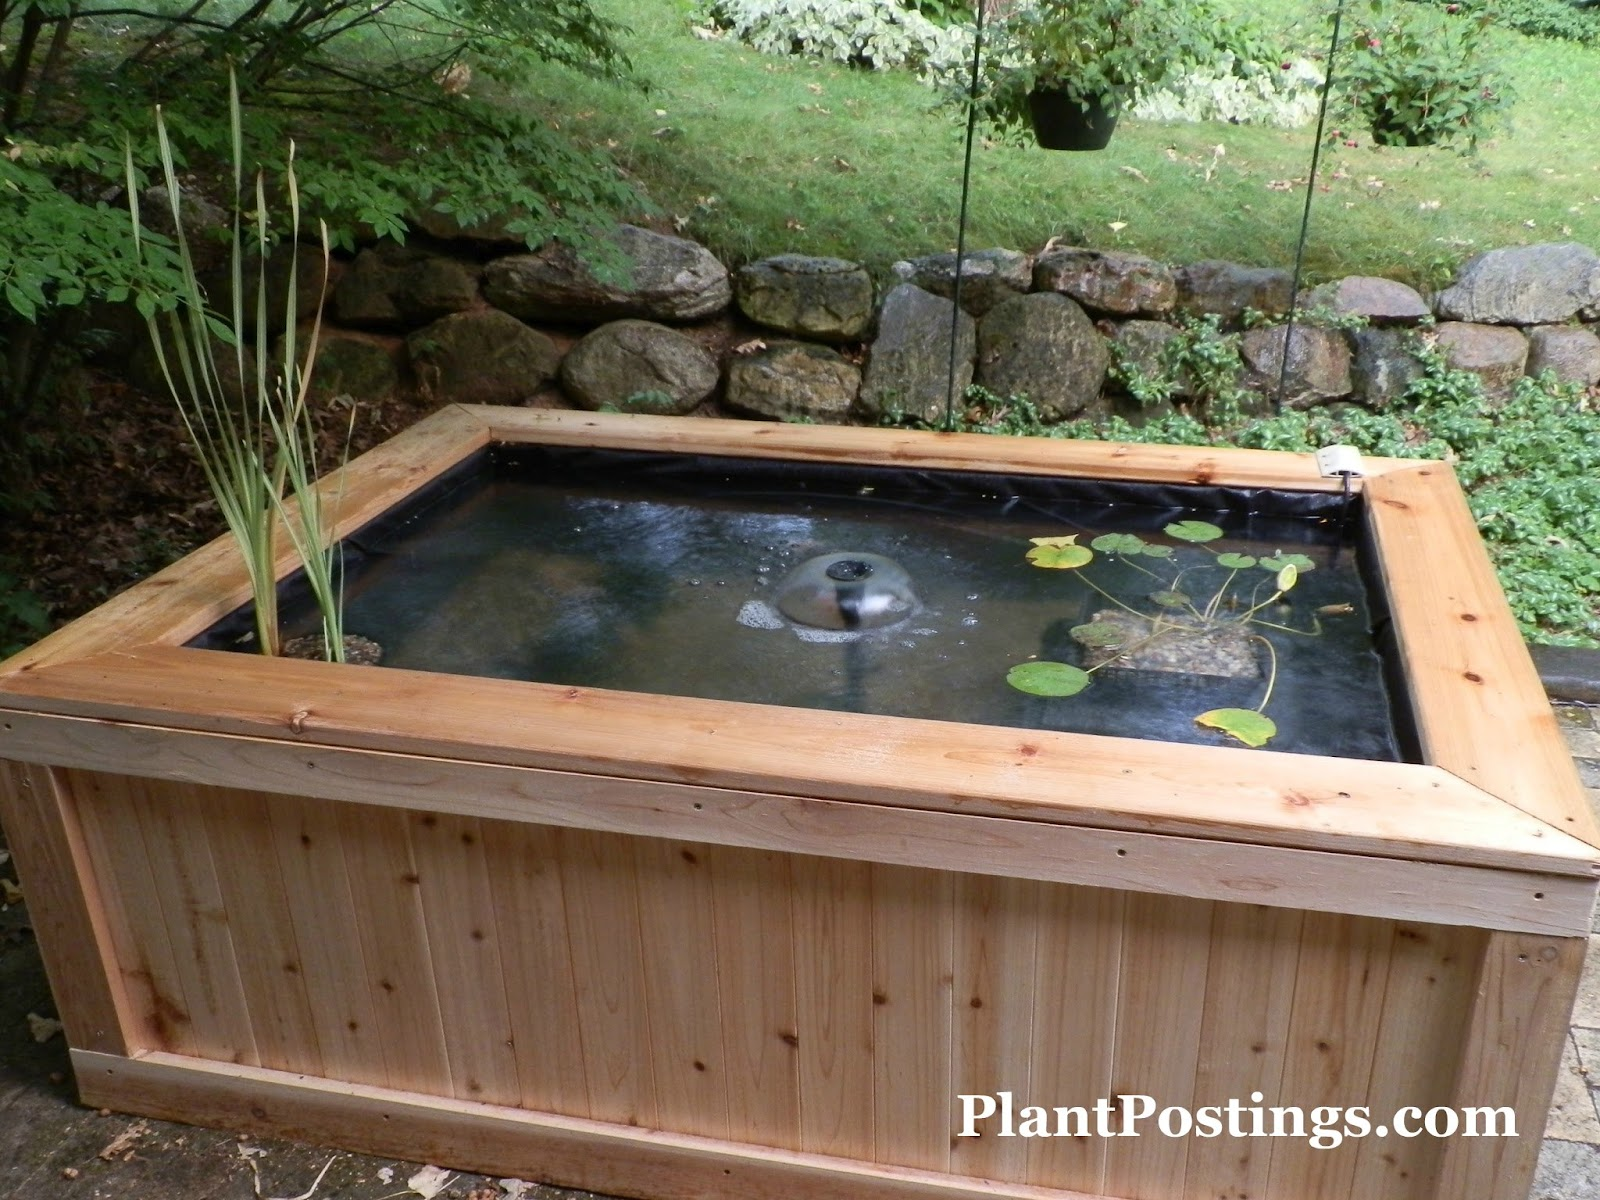 Plantpostings how to make an above ground pond for Pond building ideas